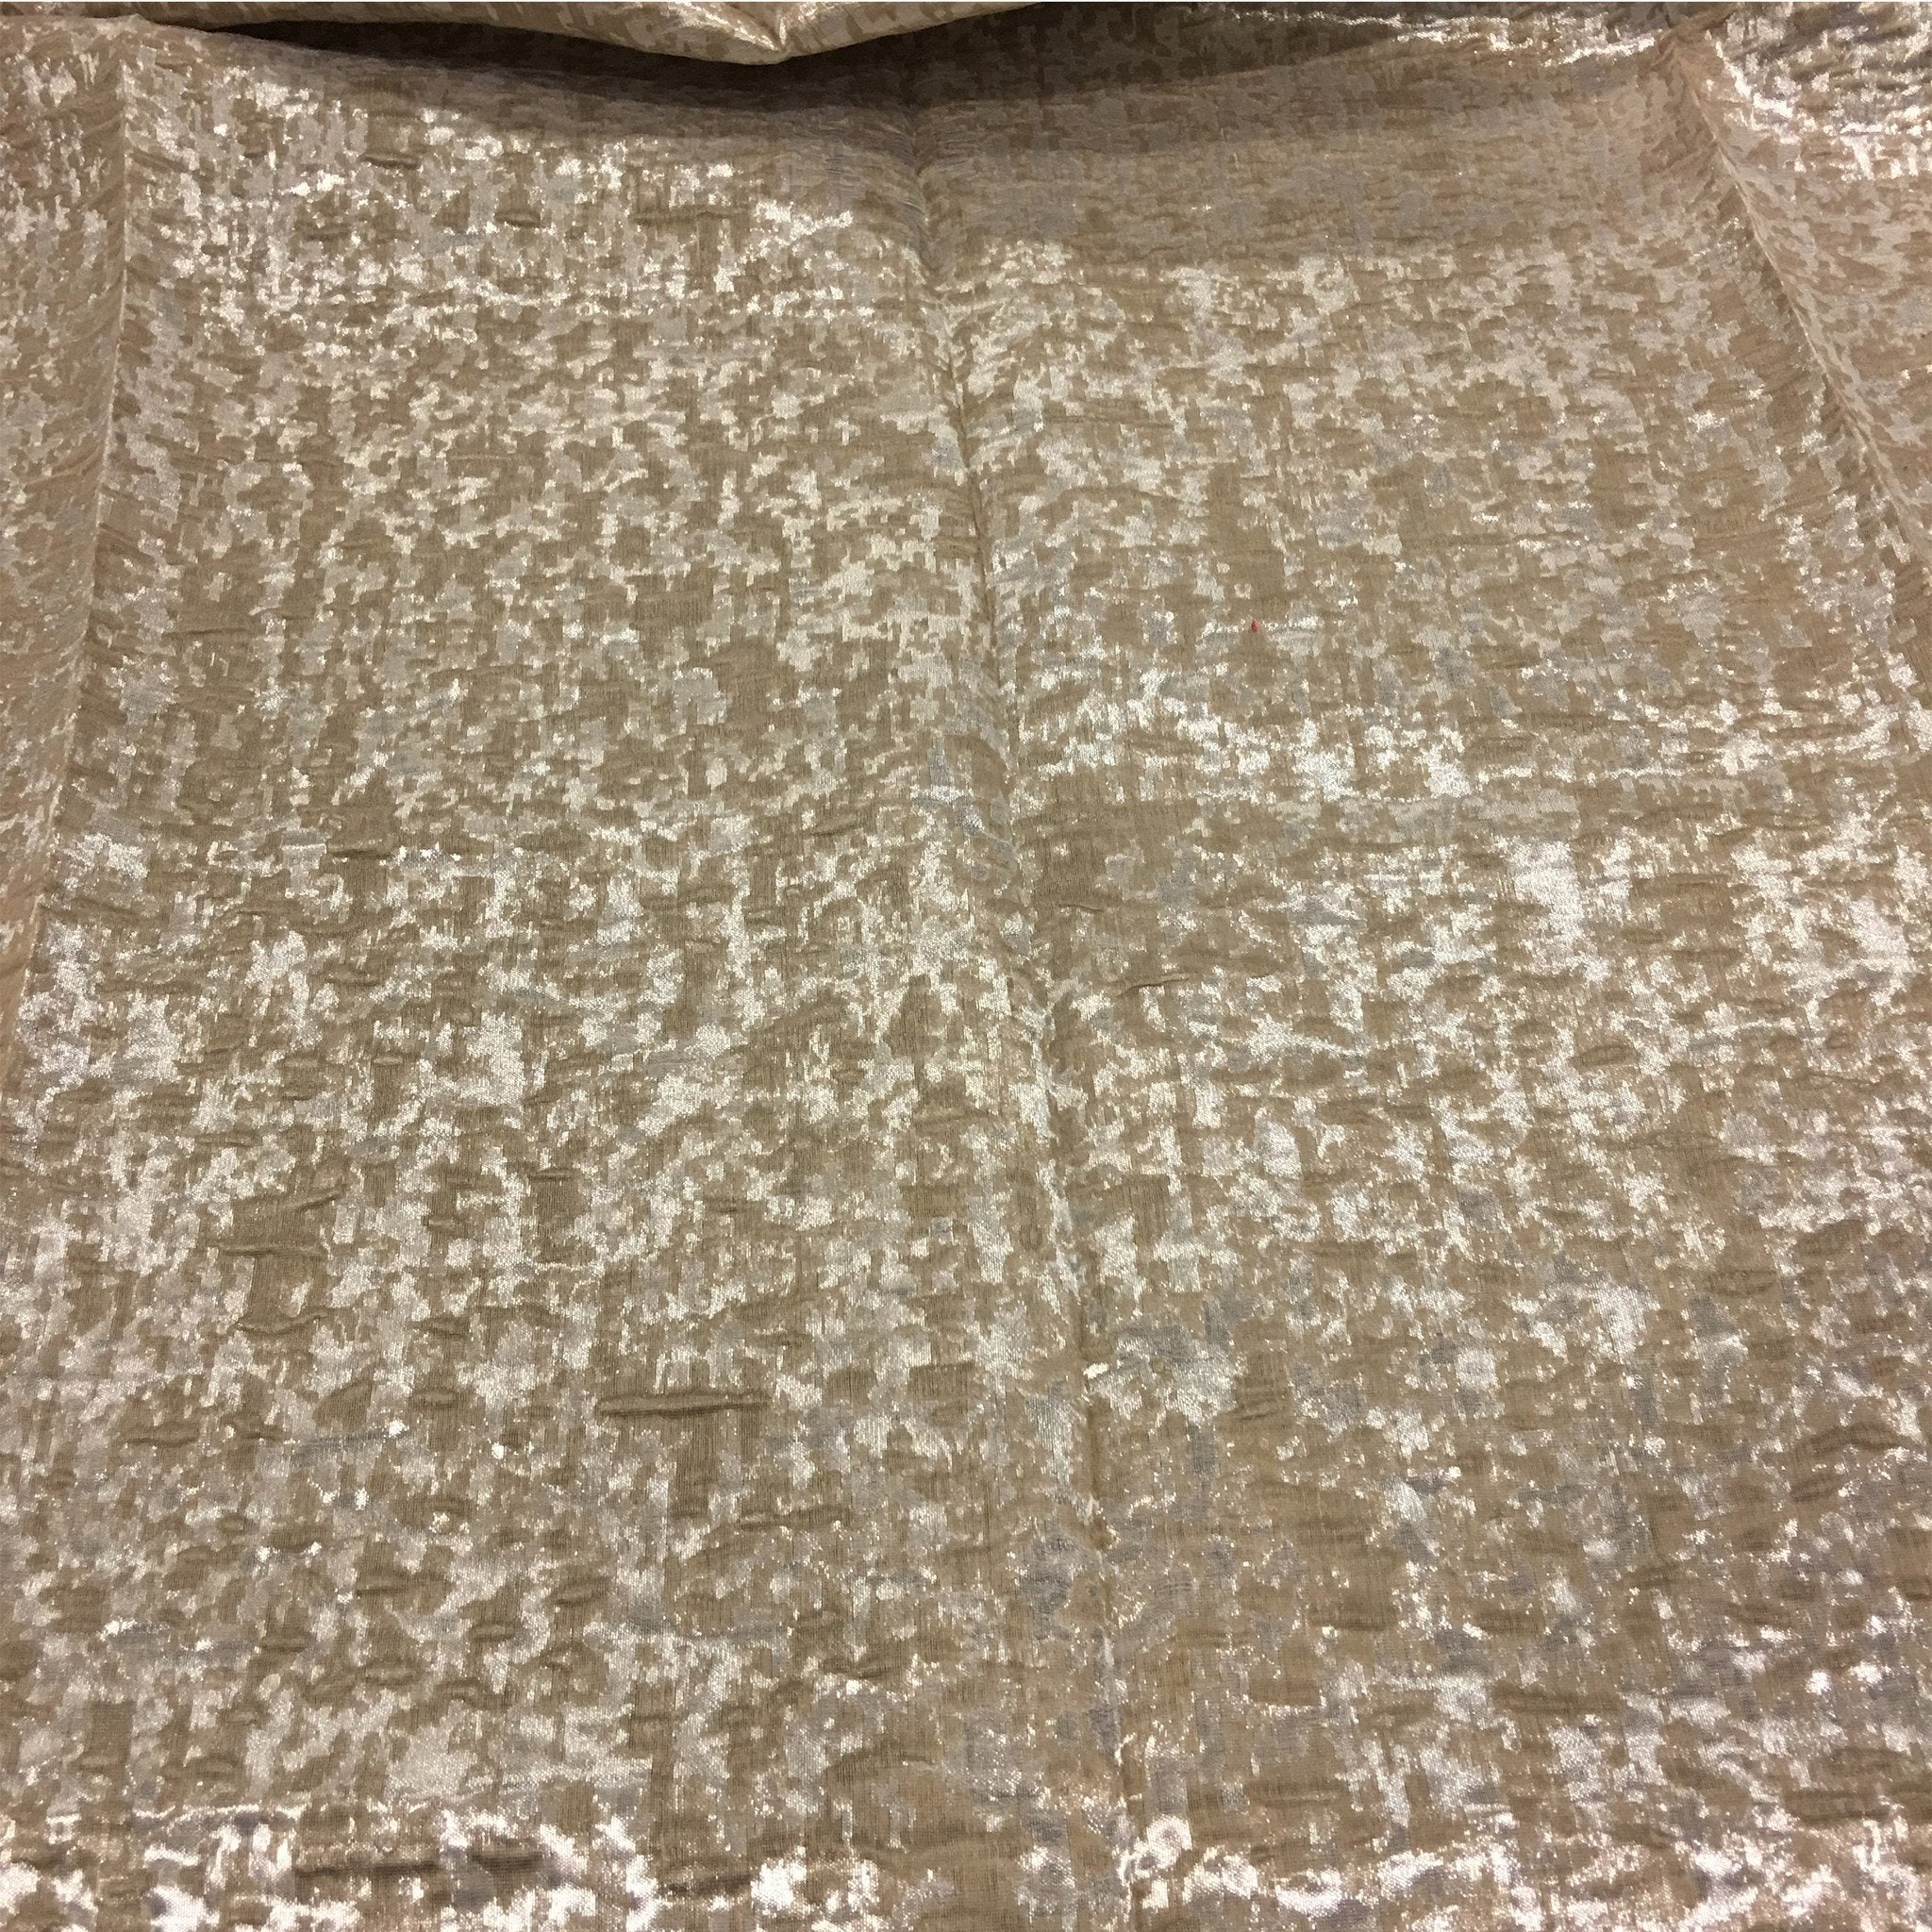 Kenter 110 Home Decor Window Organza Fabric By The Yard